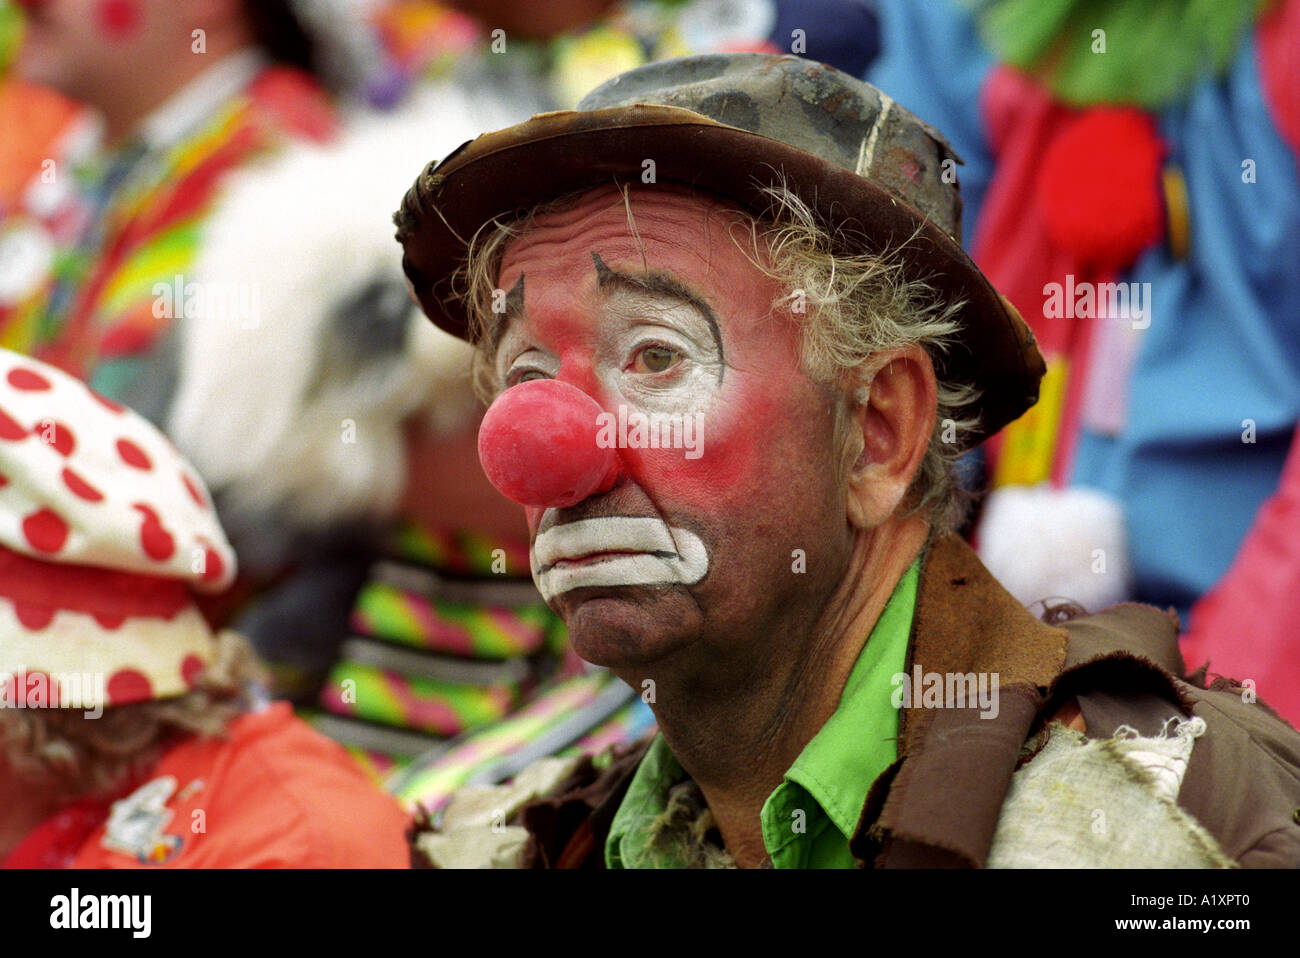 Clown Triste Au Monde Convention Clowns Banque D Images Photo Stock